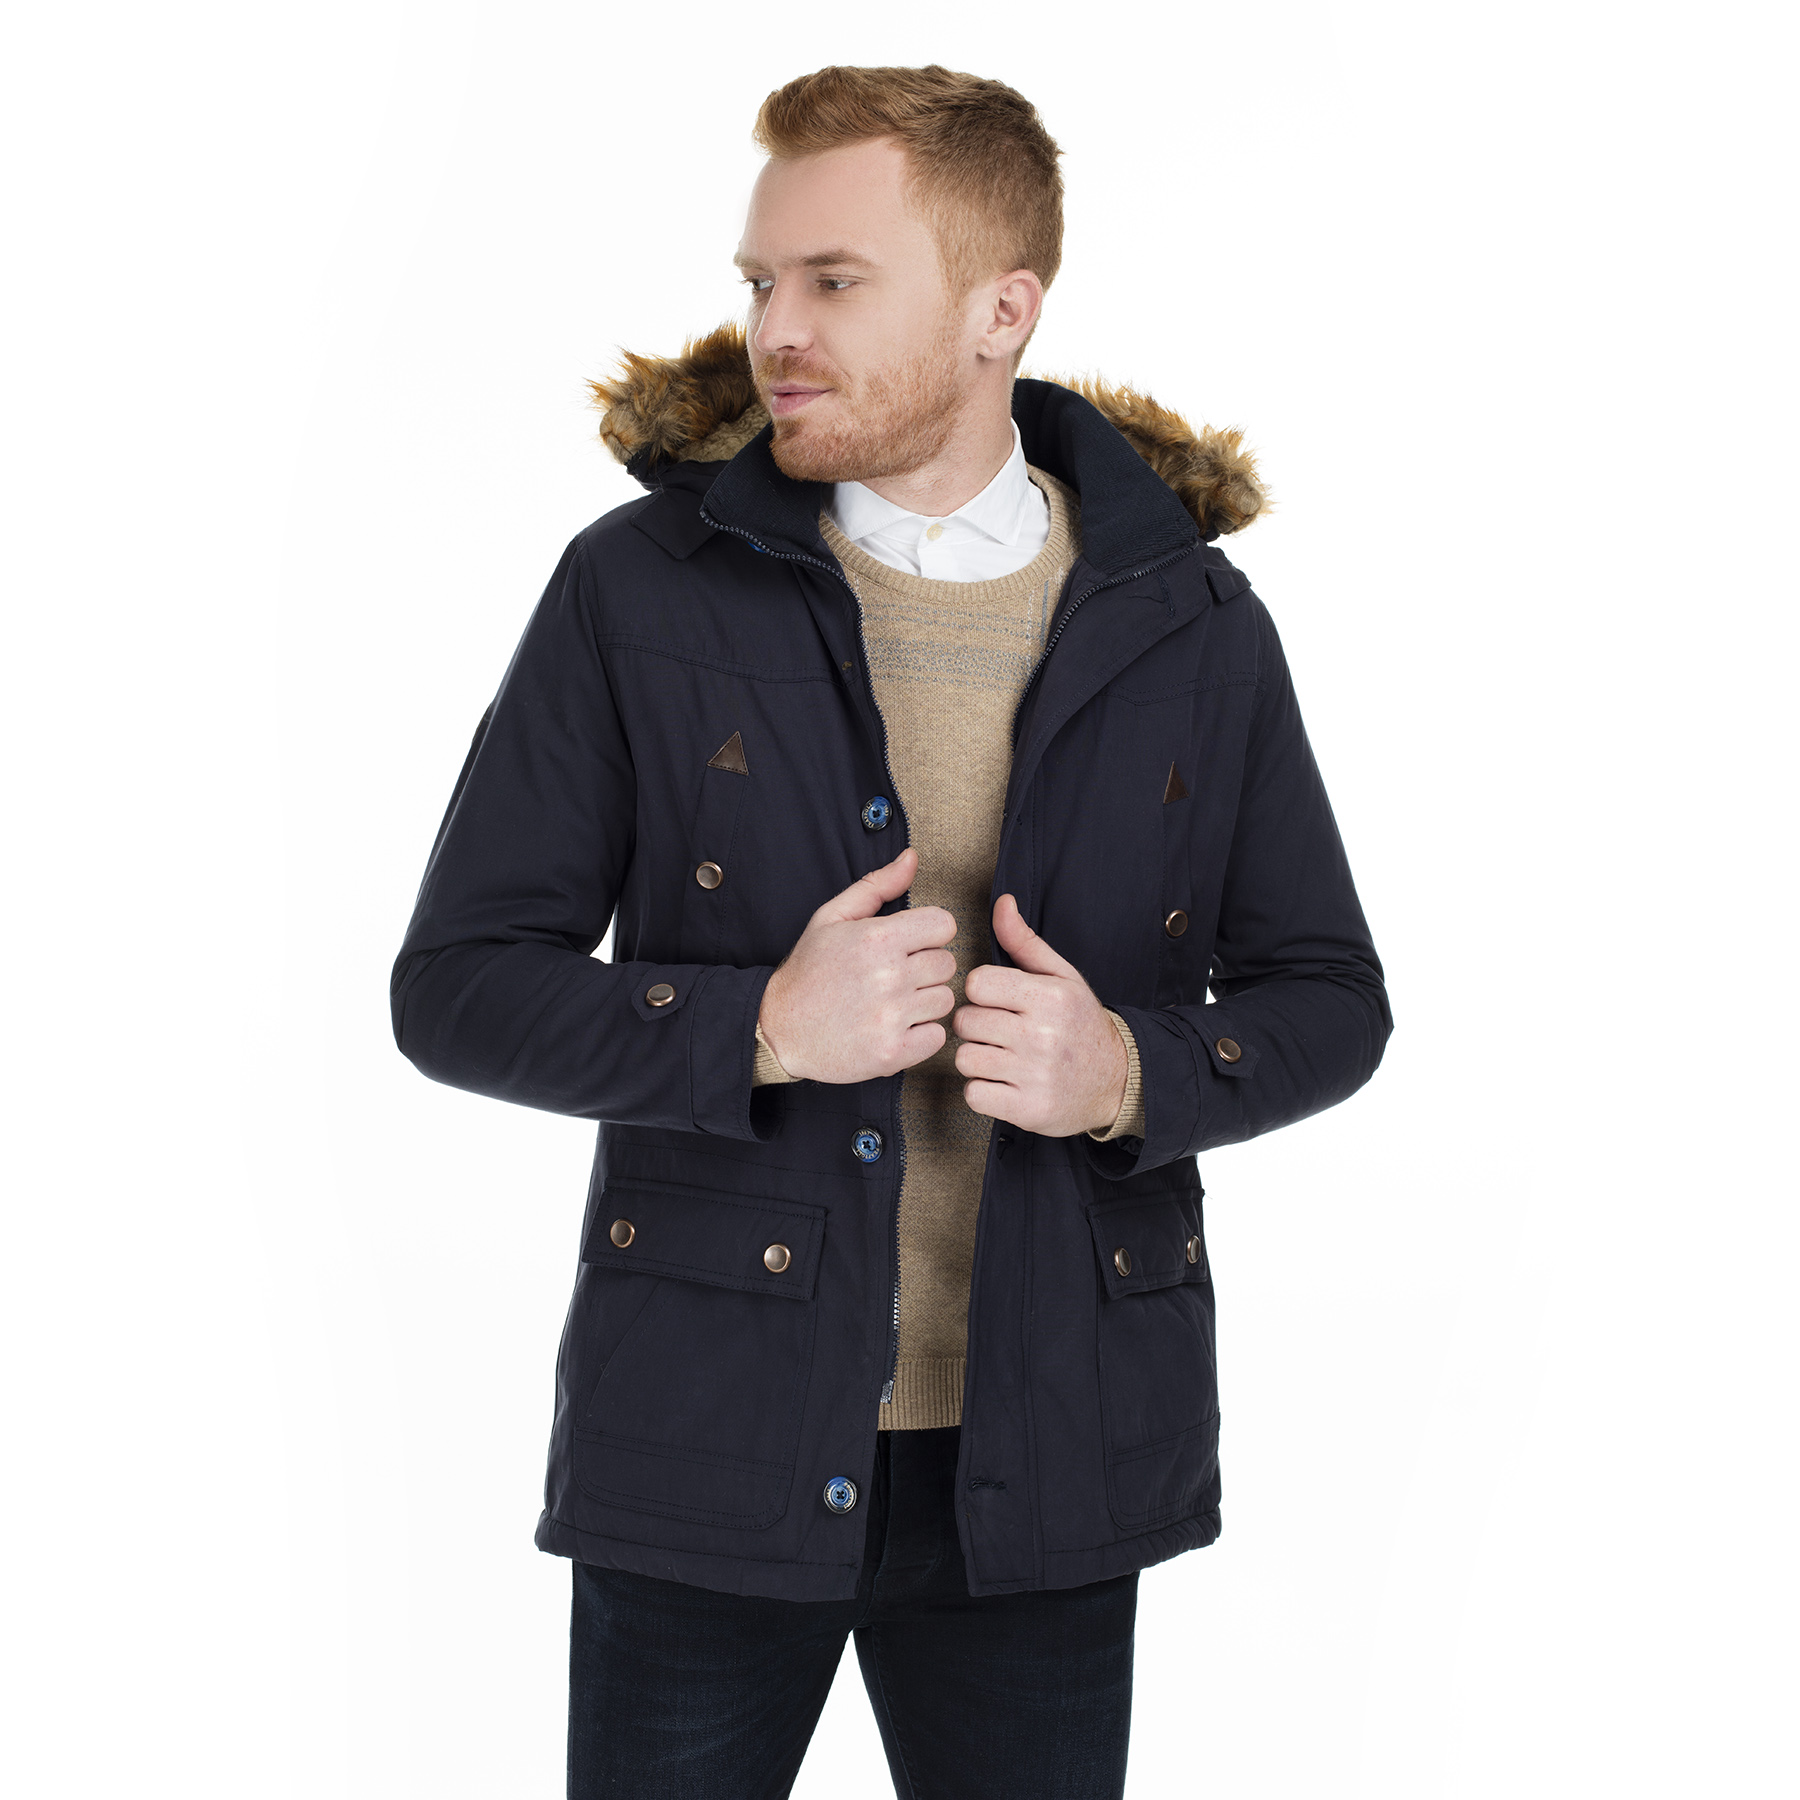 Frappoli Slim Fit Hooded Coats MALE COATS 2162036 AW0